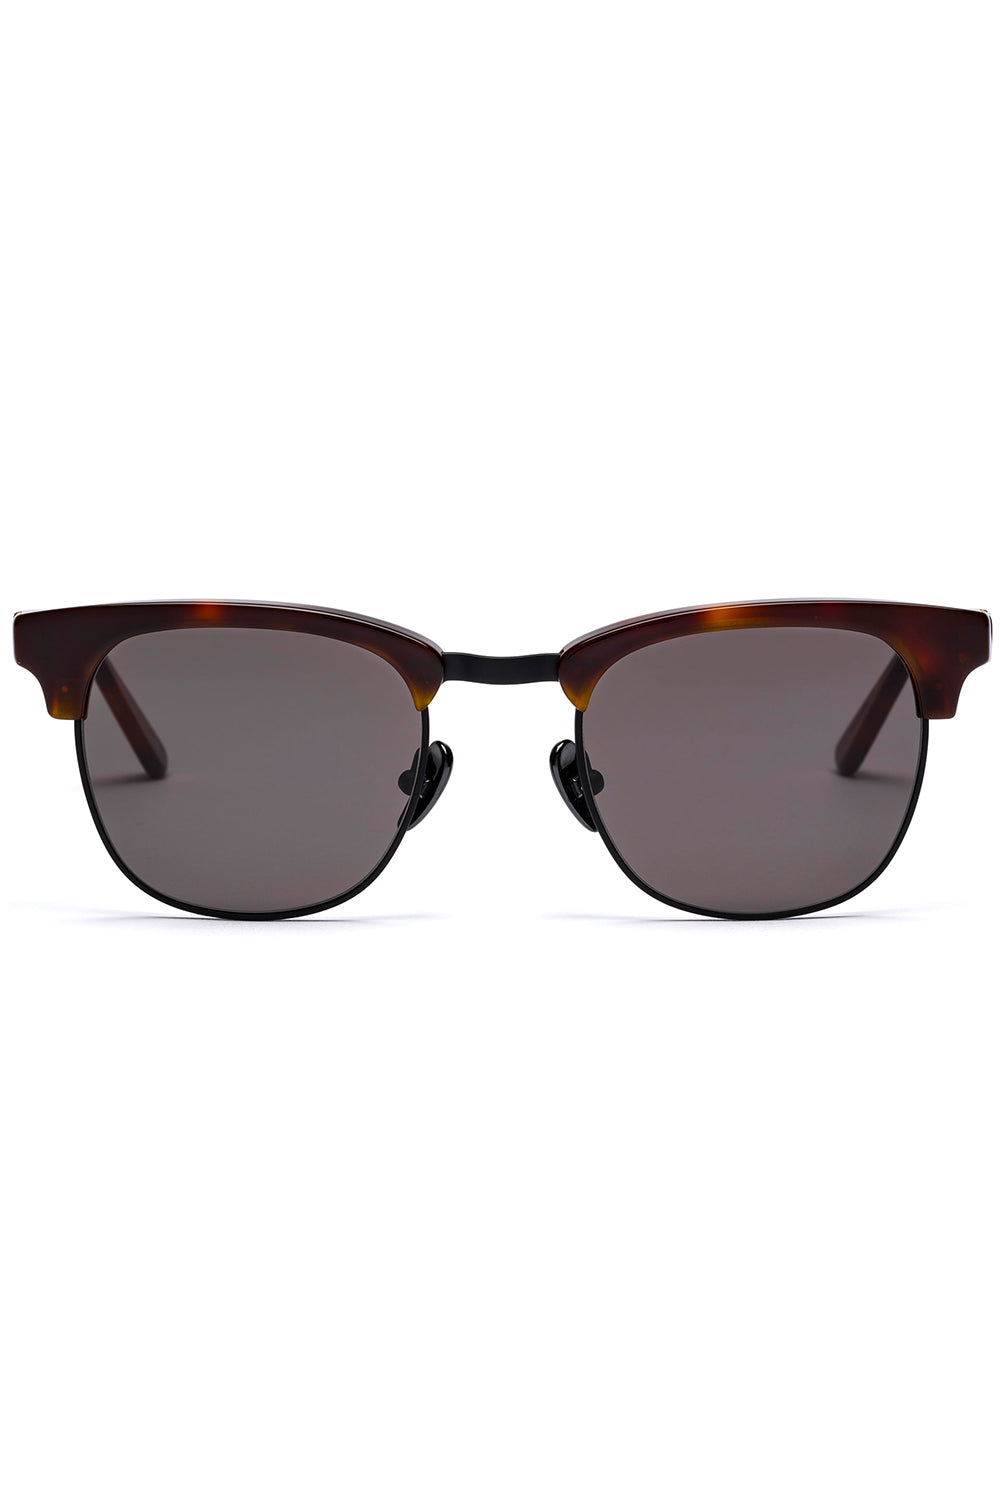 Vanguard 25 Sunglasses in Polished Classic Tortoise Acetate